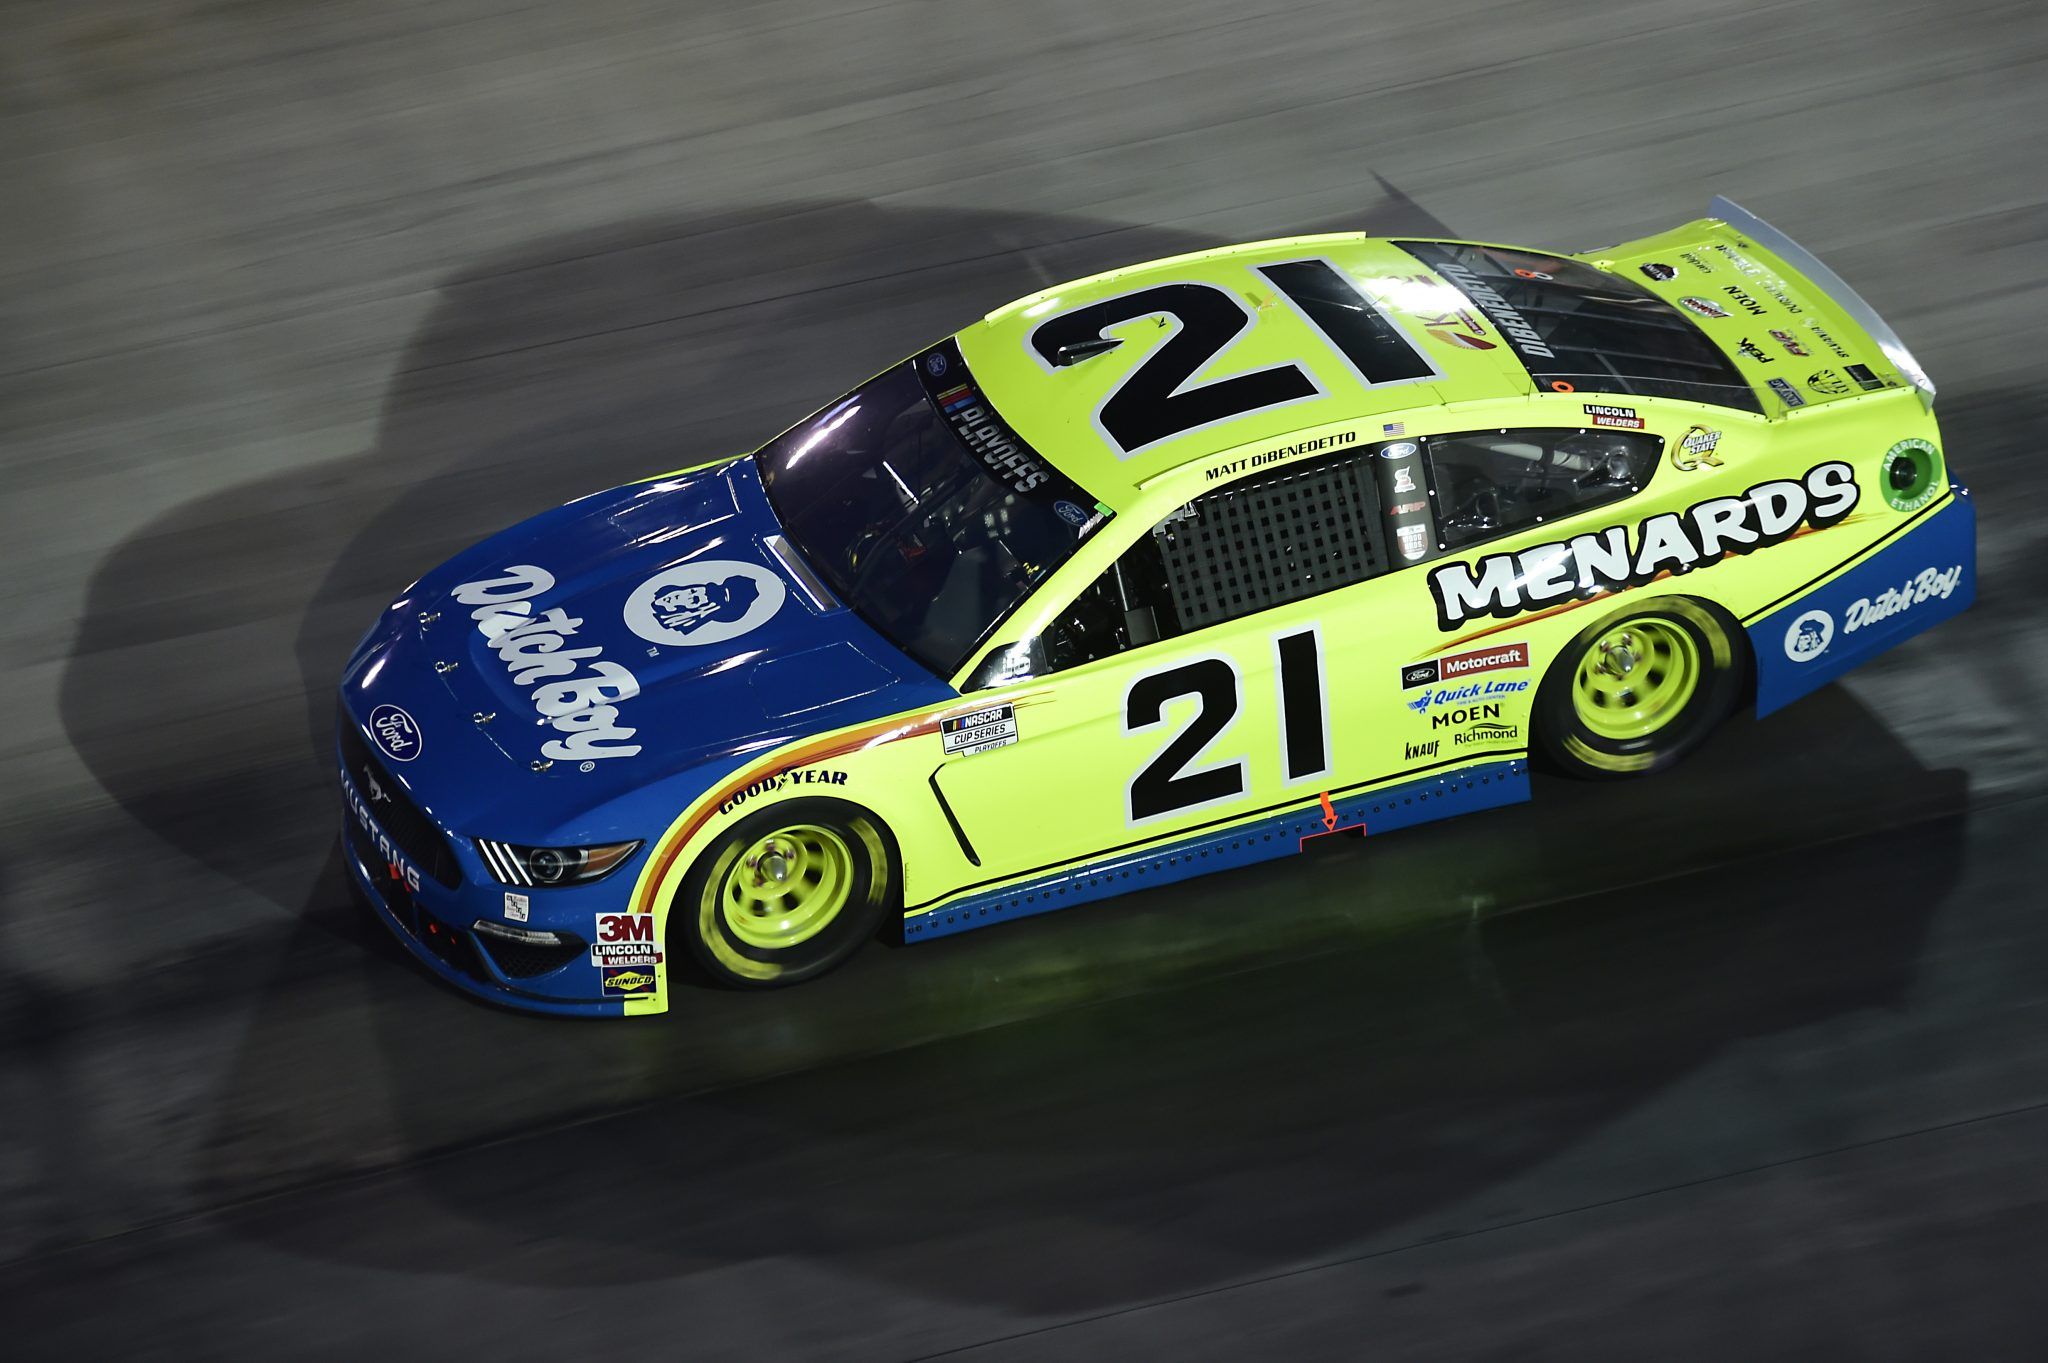 BRISTOL, TENNESSEE - SEPTEMBER 19: Matt DiBenedetto, driver of the #21 Menards/Dutch Boy Ford, drives during the NASCAR Cup Series Bass Pro Shops Night Race at Bristol Motor Speedway on September 19, 2020 in Bristol, Tennessee. (Photo by Jared C. Tilton/Getty Images) | Getty Images